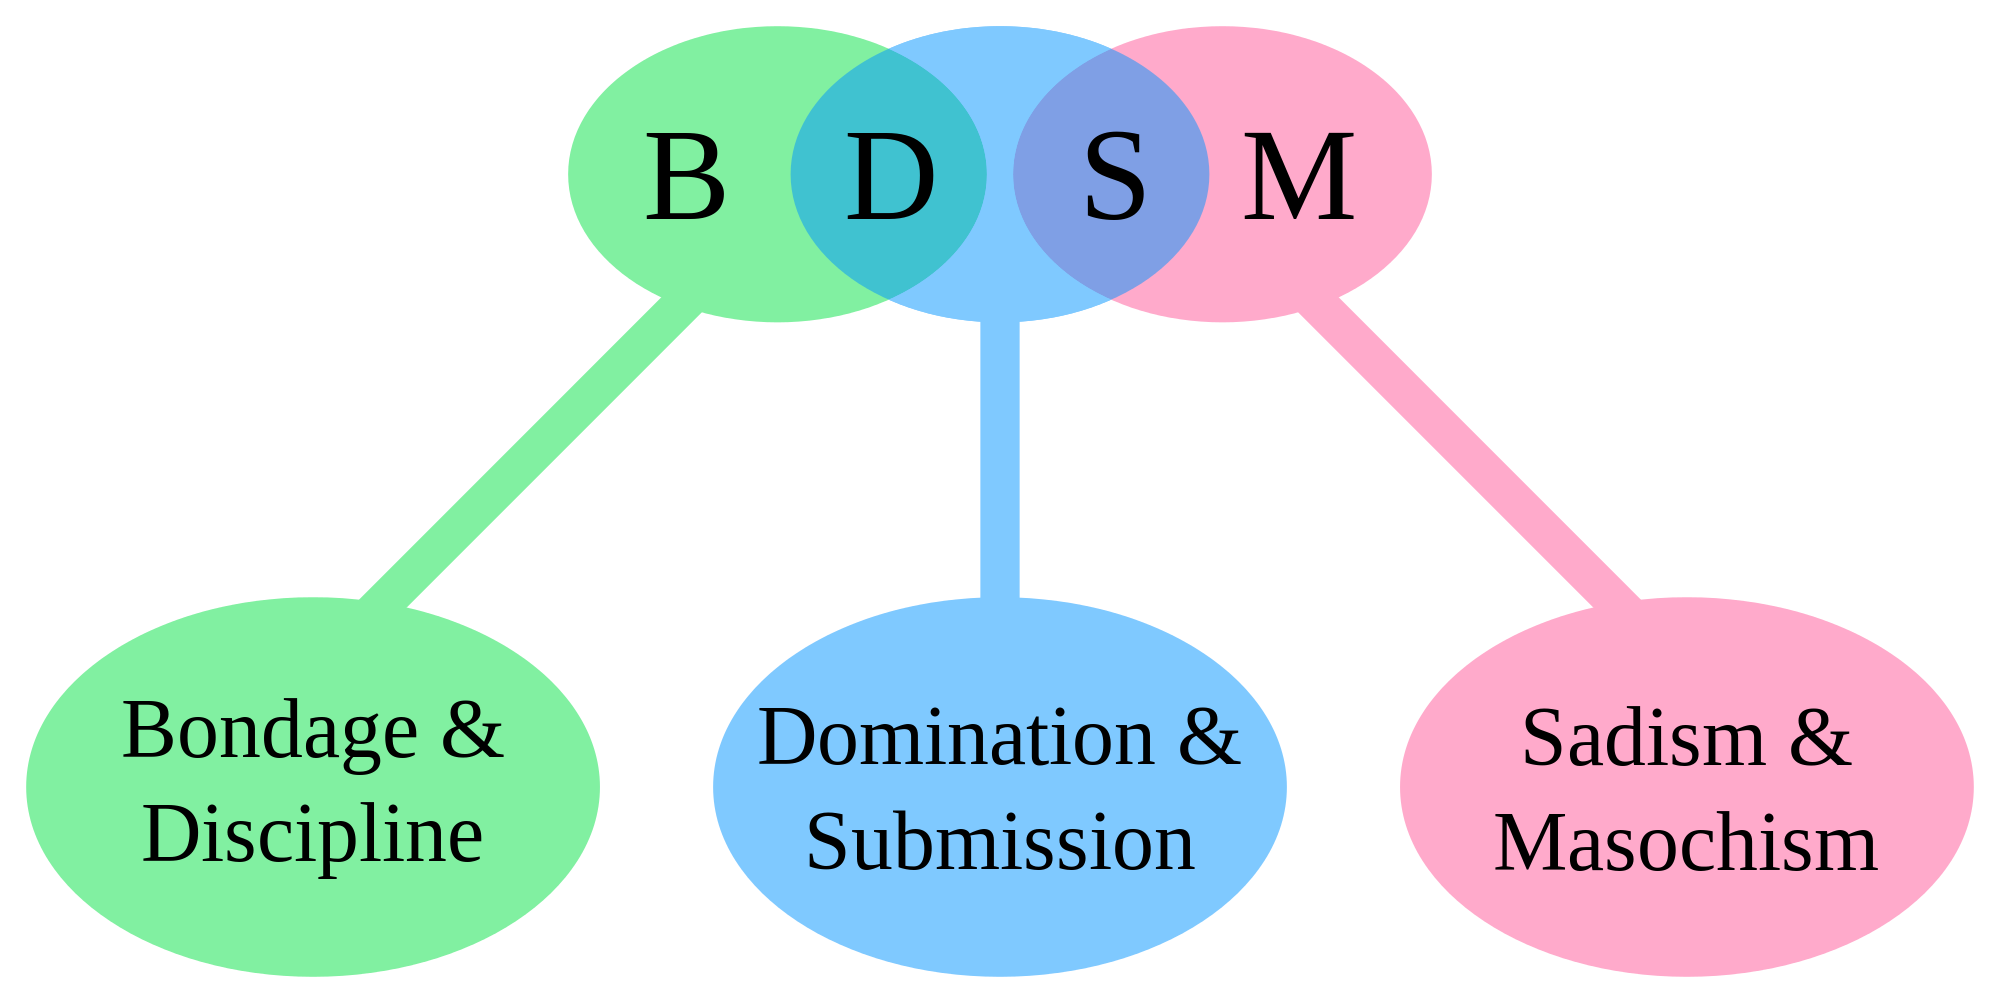 What does bdsm stand for